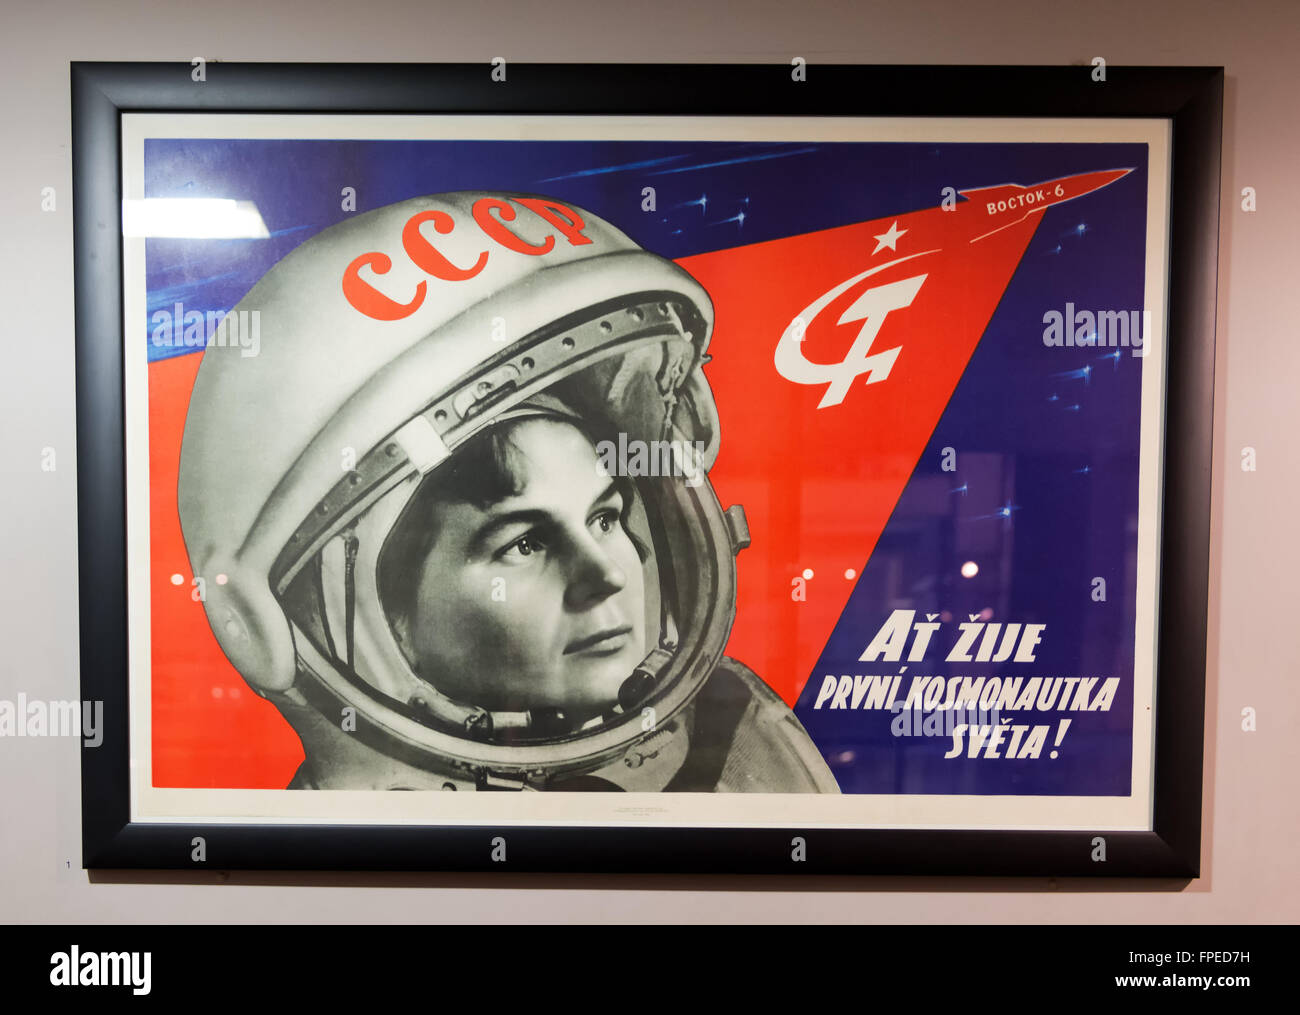 Close up of original vintage Soviet cosmonaut poster behind glass frame on display in a museum - Stock Image